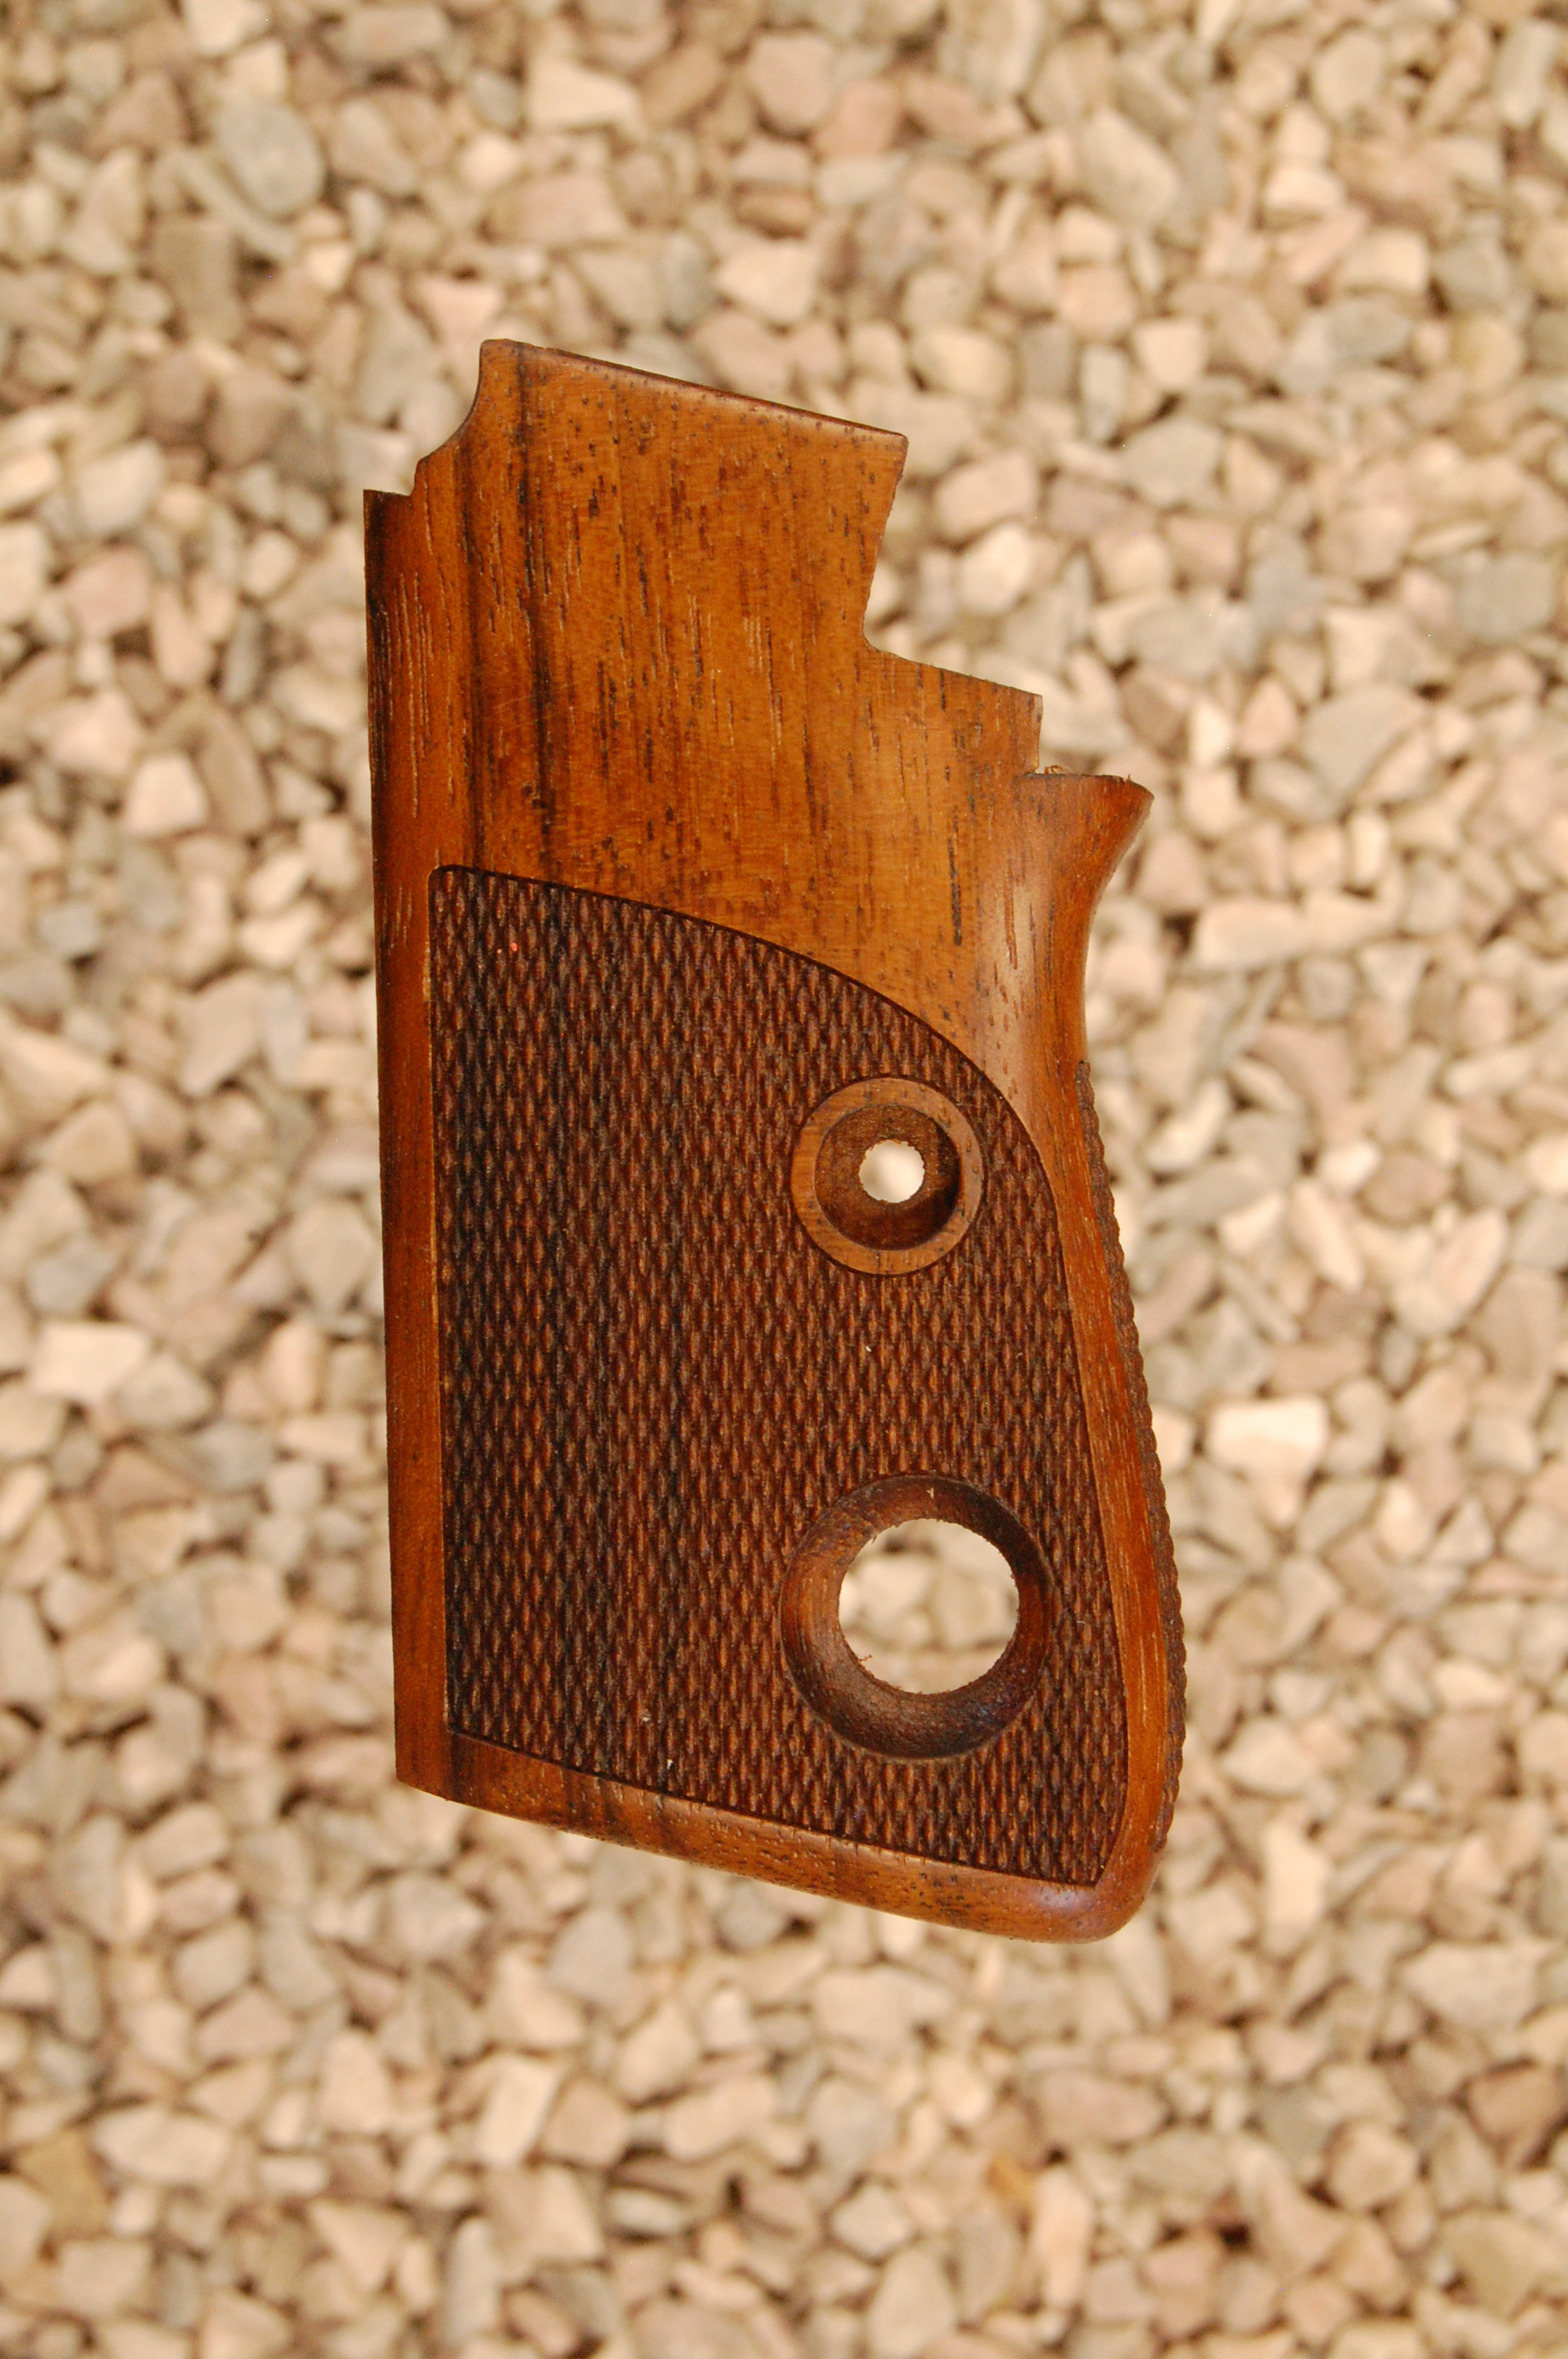 BERETTA 7071 2nd type grips (checkered back) - full size